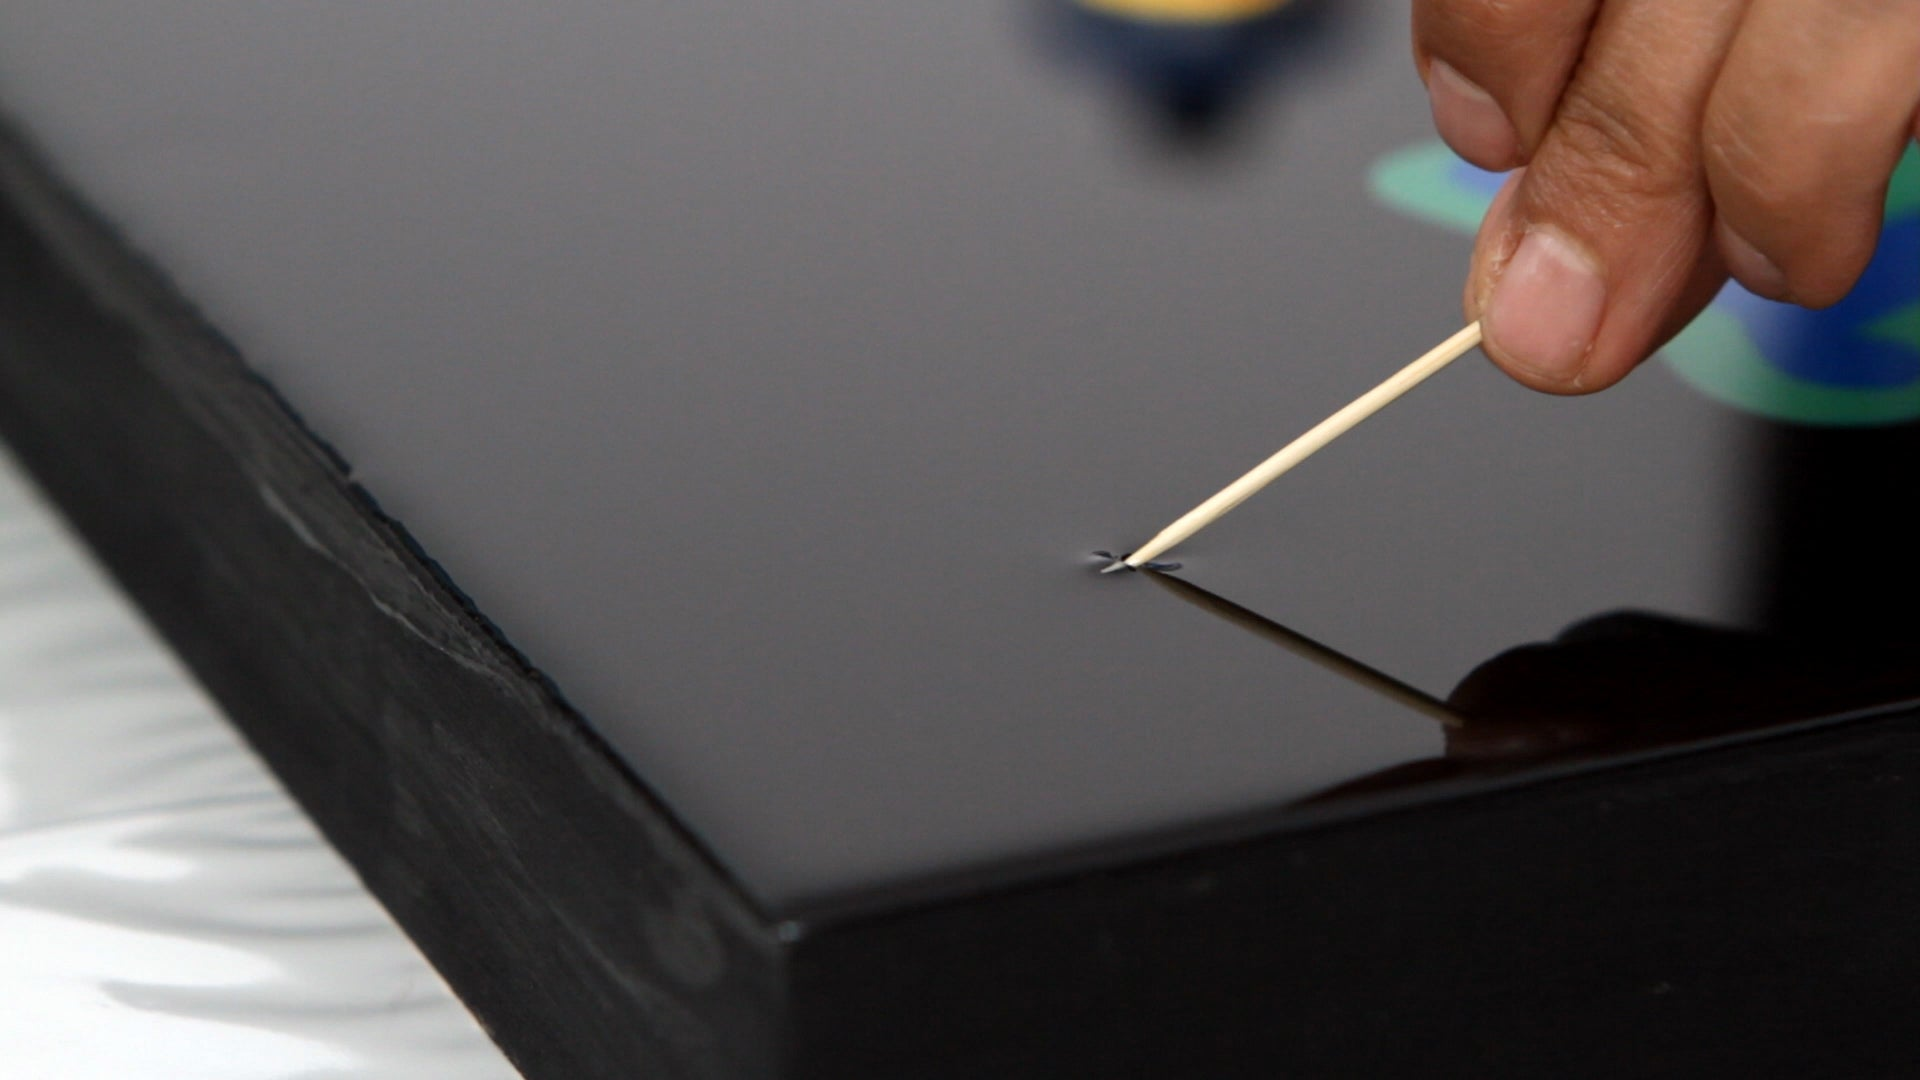 remove dust from resin with toothpick